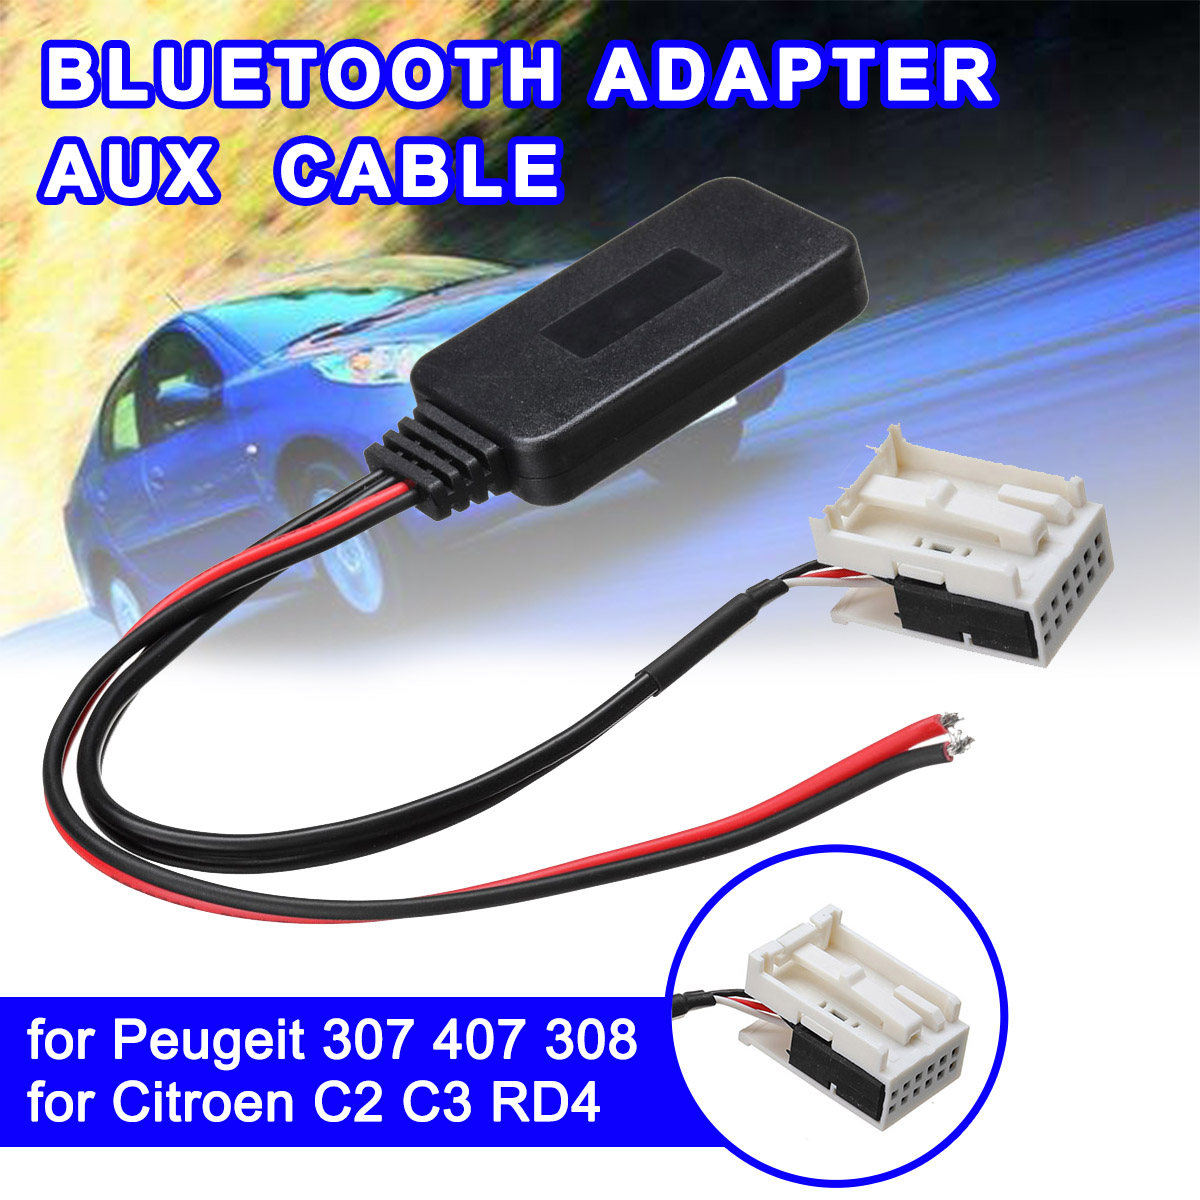 12Pin bluetooth Module Wireless Radio for Peugeot 207 307 407 308 for Citroen C2 C3 RD4 Car Stereo AUX-IN Aux Cable Adapter